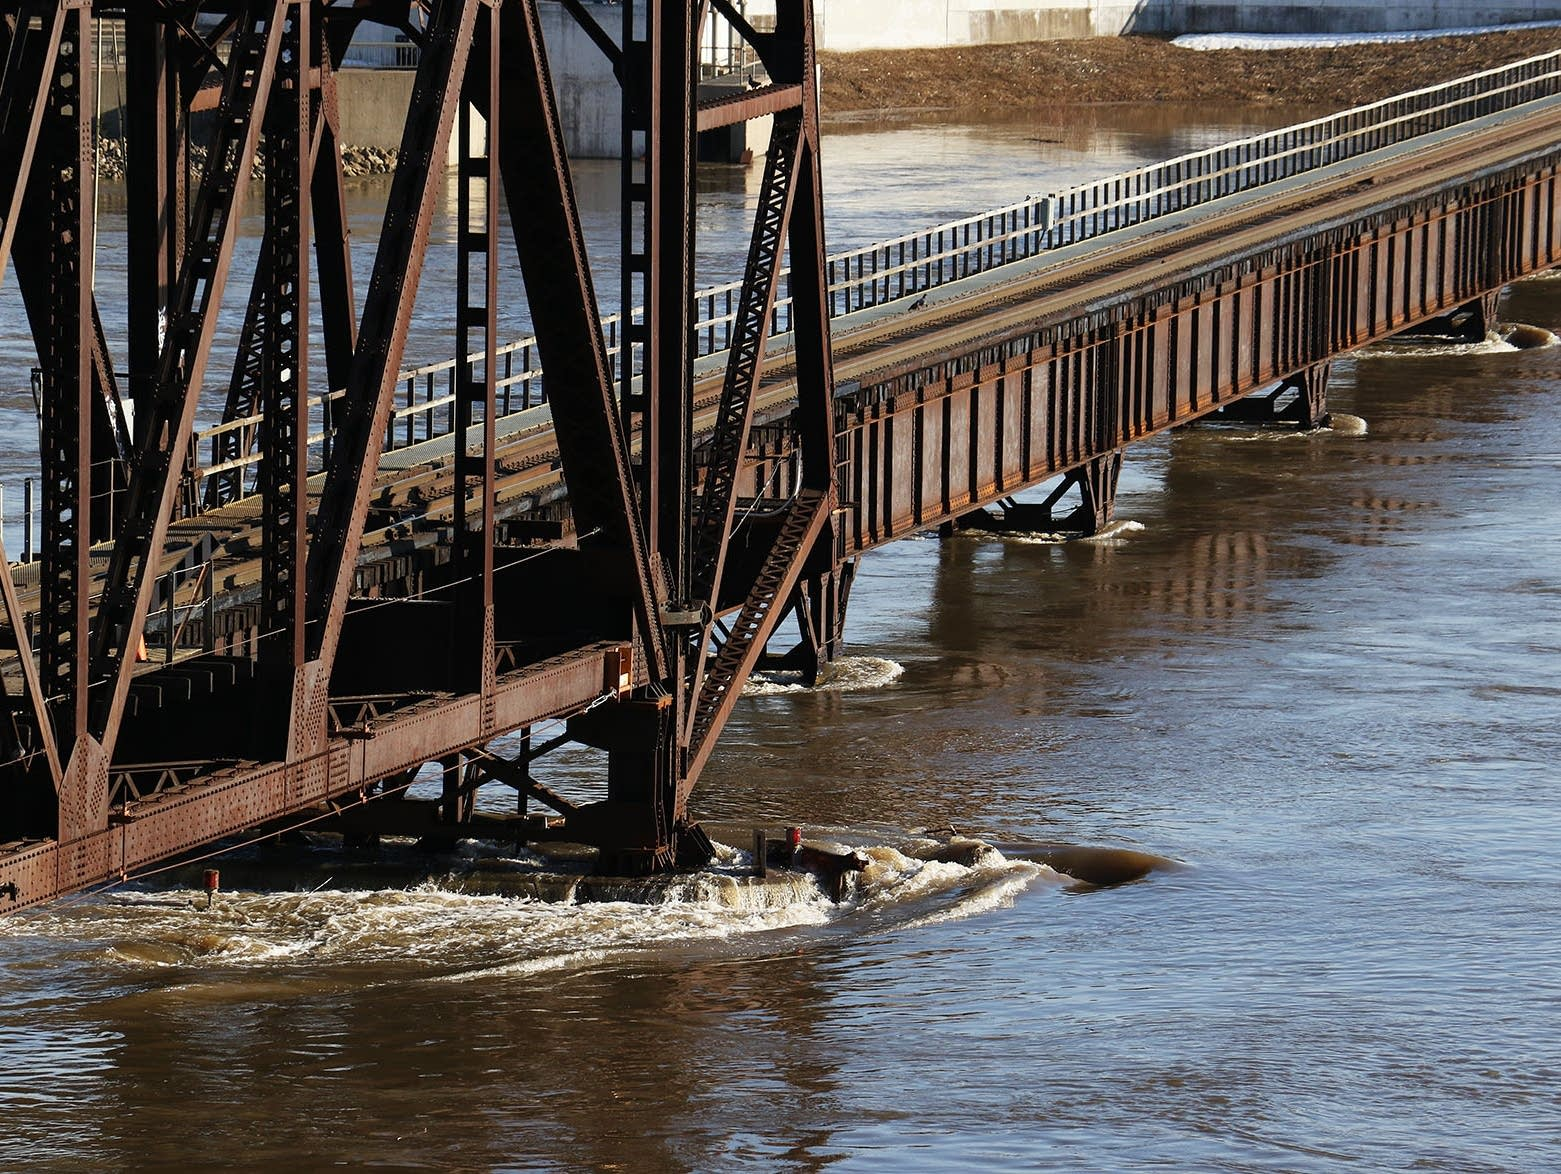 The strong current of the Mississippi River in flood stage